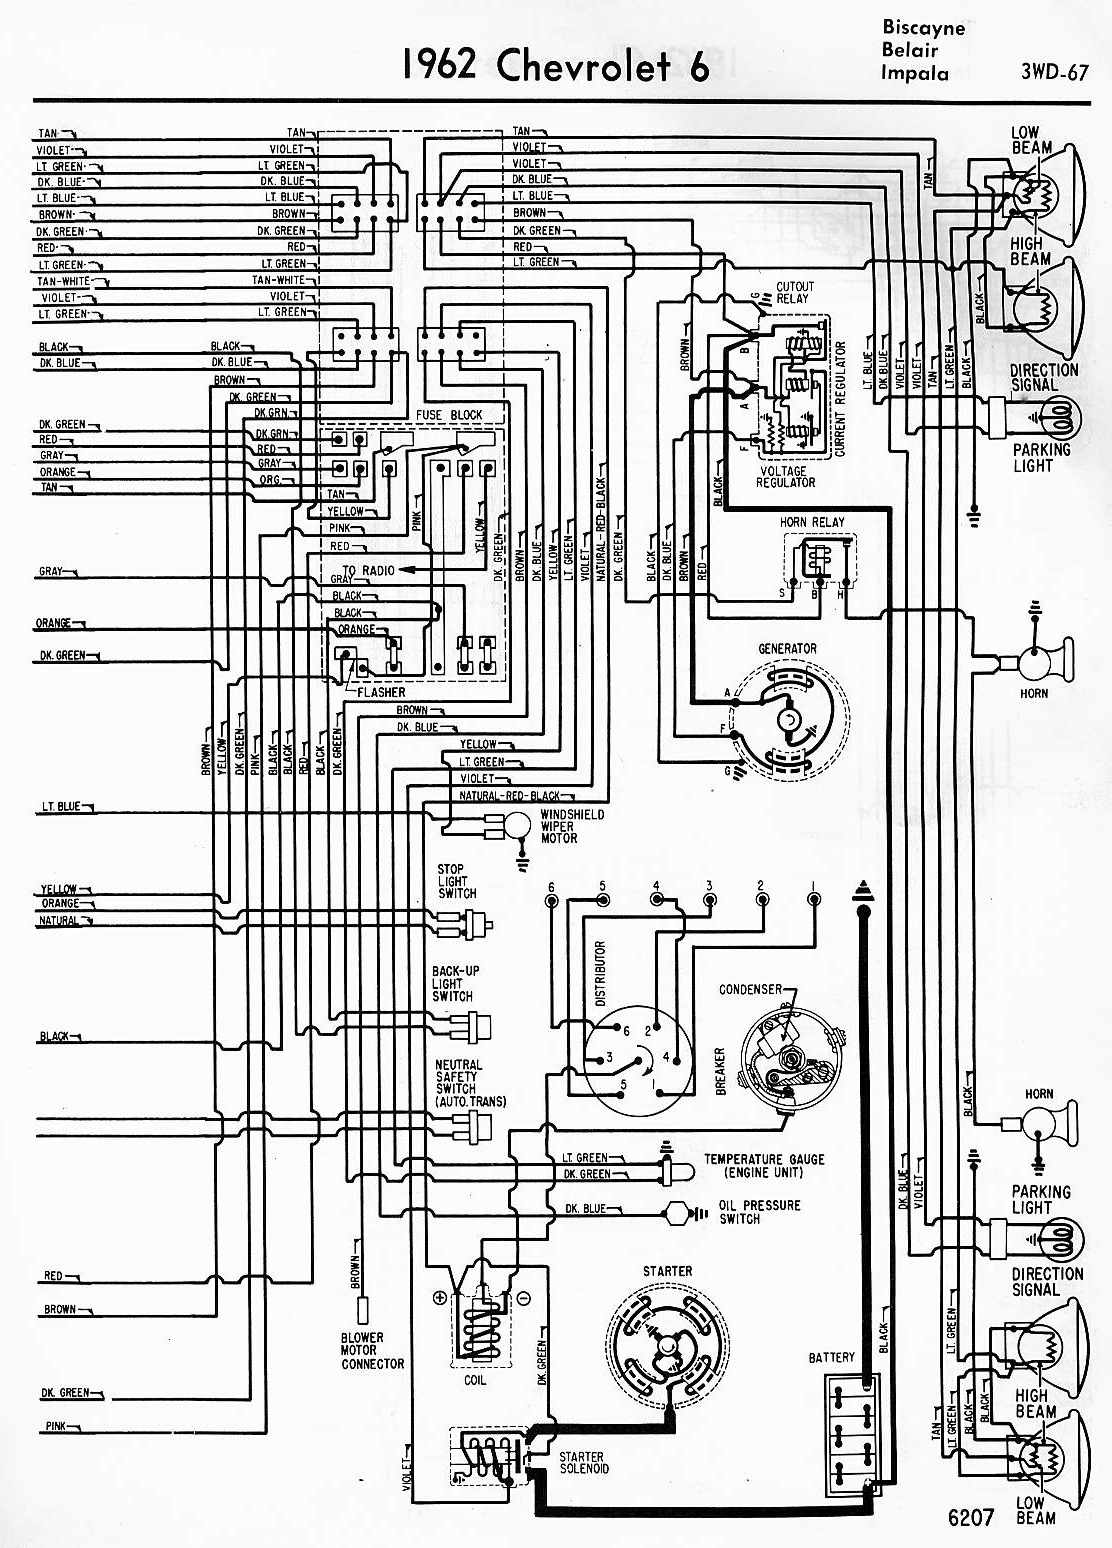 2001 s10 air conditioner wiring diagram #1 2001 Chevy S10 Fuel Pump Wiring Diagram 2001 s10 air conditioner wiring diagram